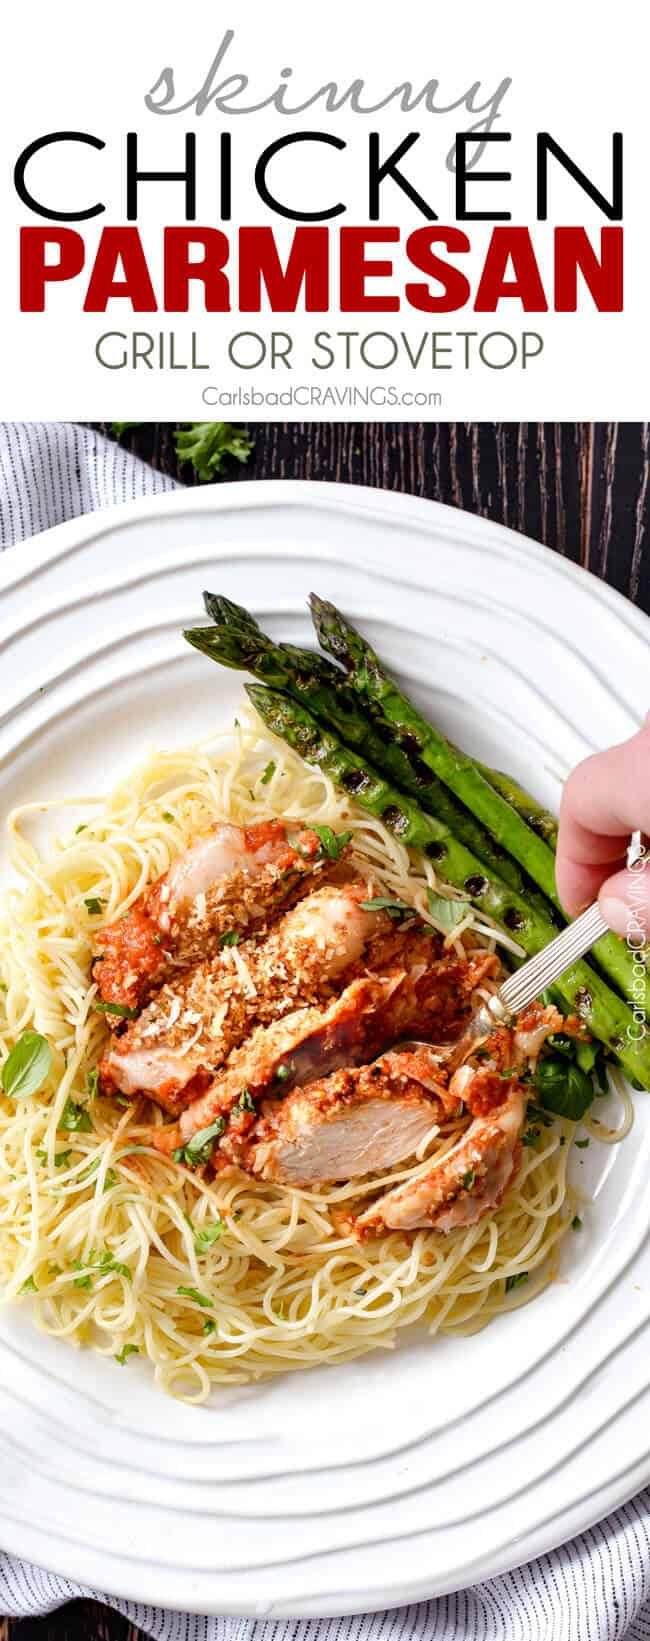 Skinny Chicken Parmesan on a white plate with asparagus.